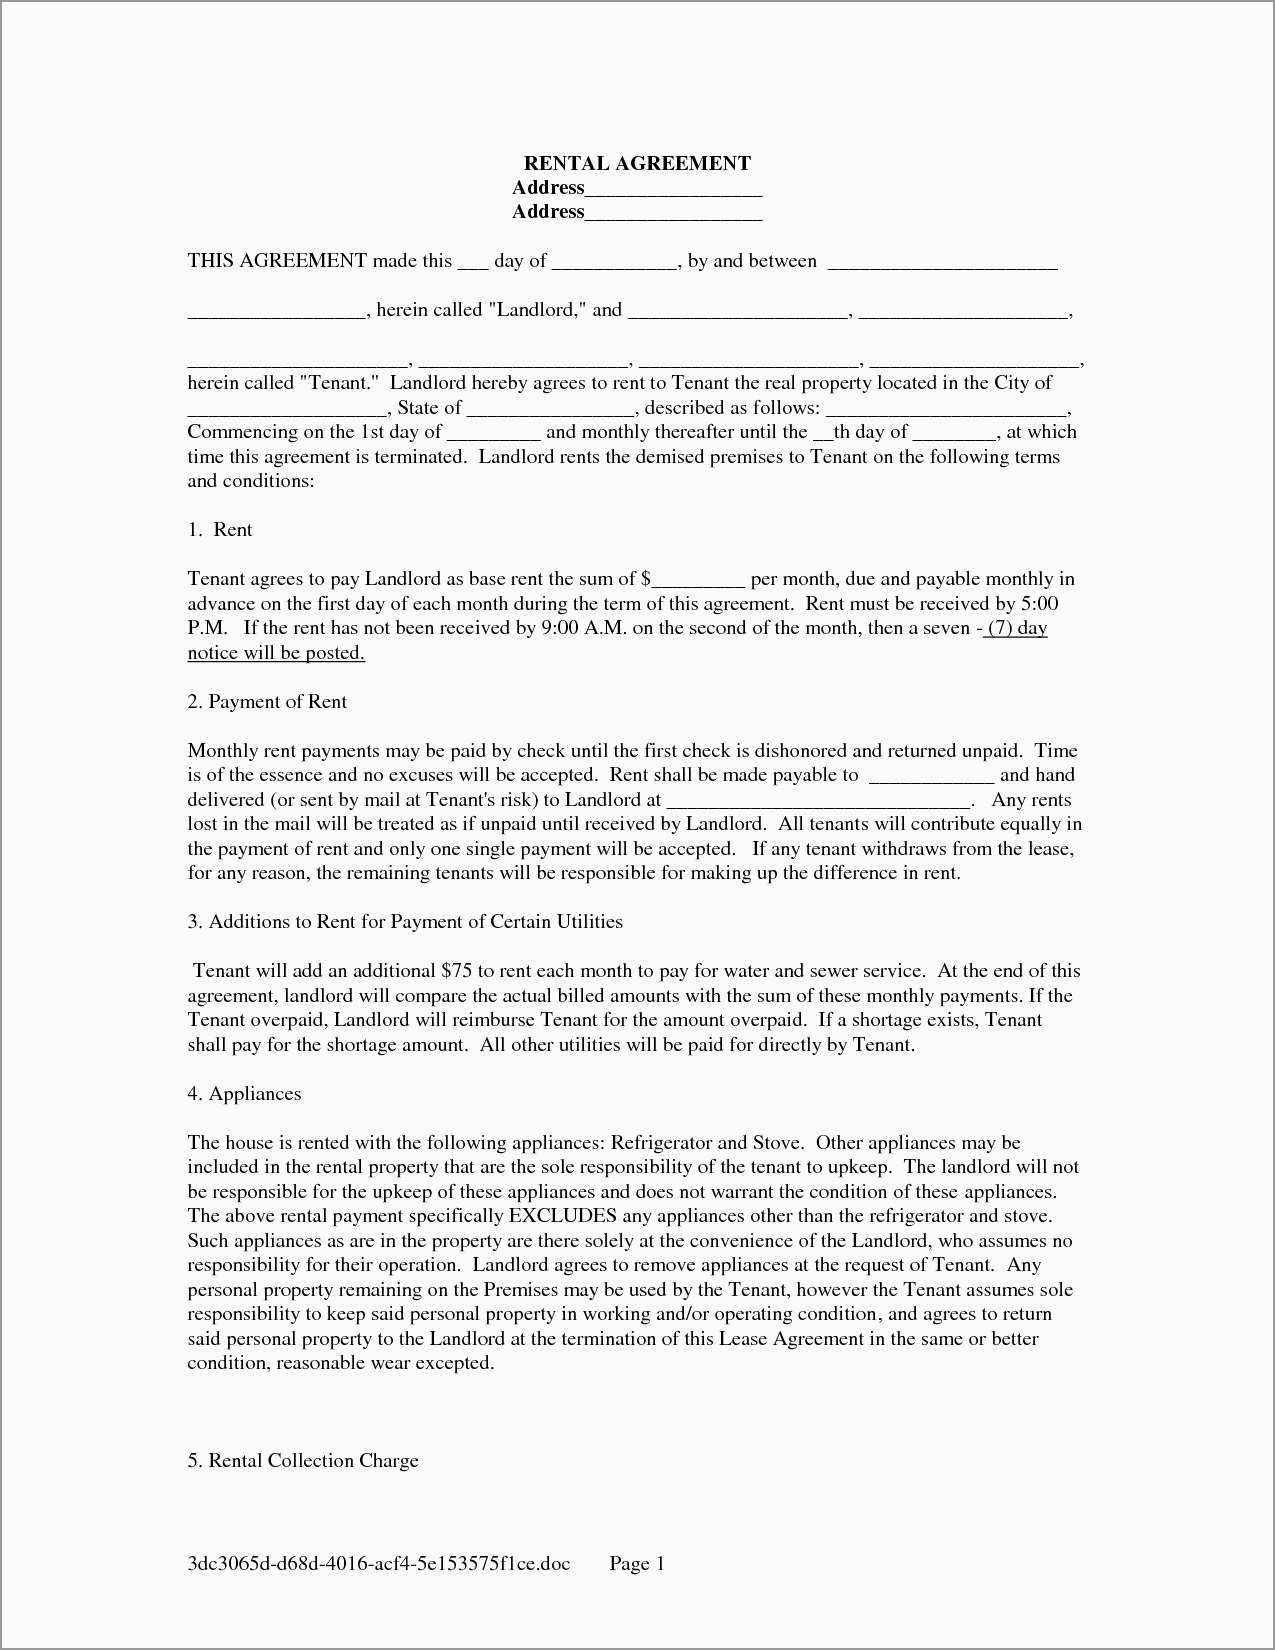 Contract Rental Agreement Template New Rental House Contract Template Free Best Of Template